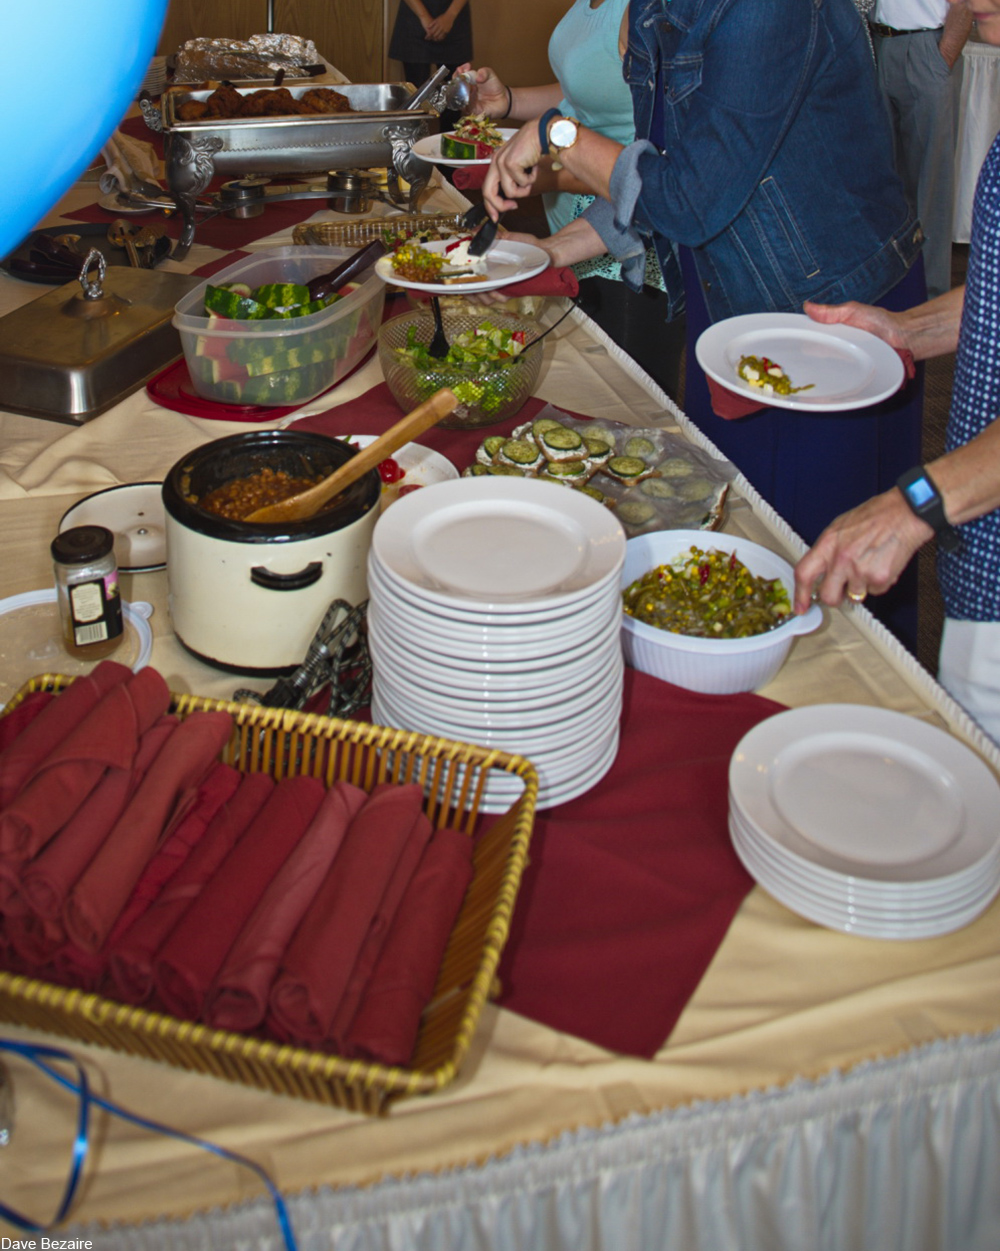 Potluck table filled with food